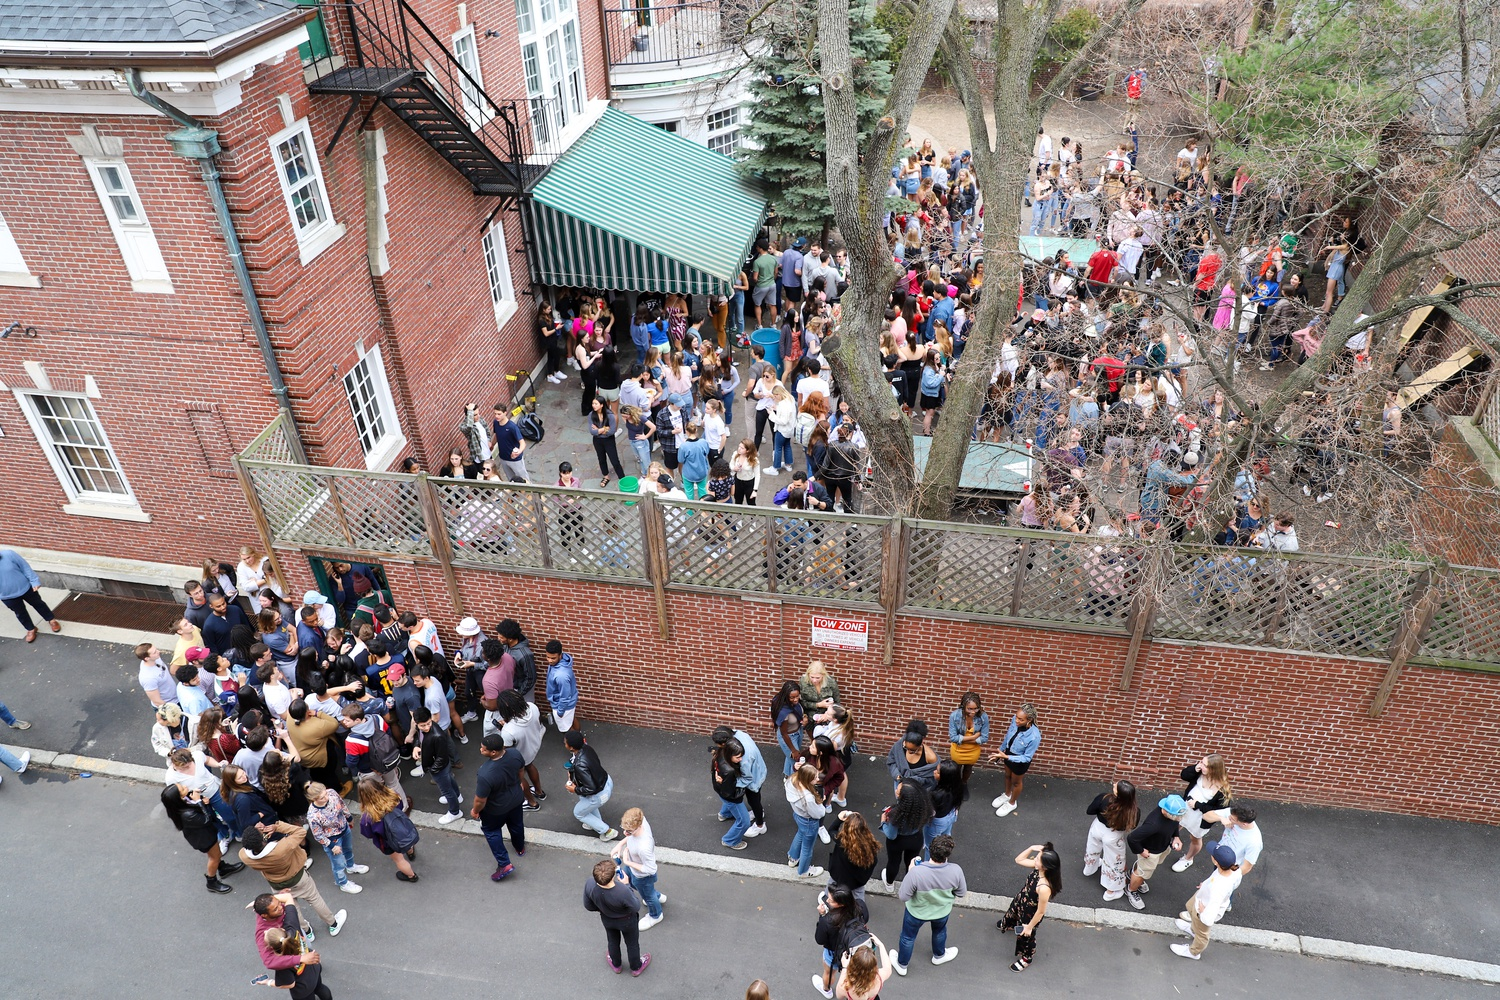 The Owl, a final club at Harvard, hosted a daytime party following the College's announcement that students must evacuate campus. During the last 5 days before vacating campus, many seniors celebrated their last four years by attending various events and parties.